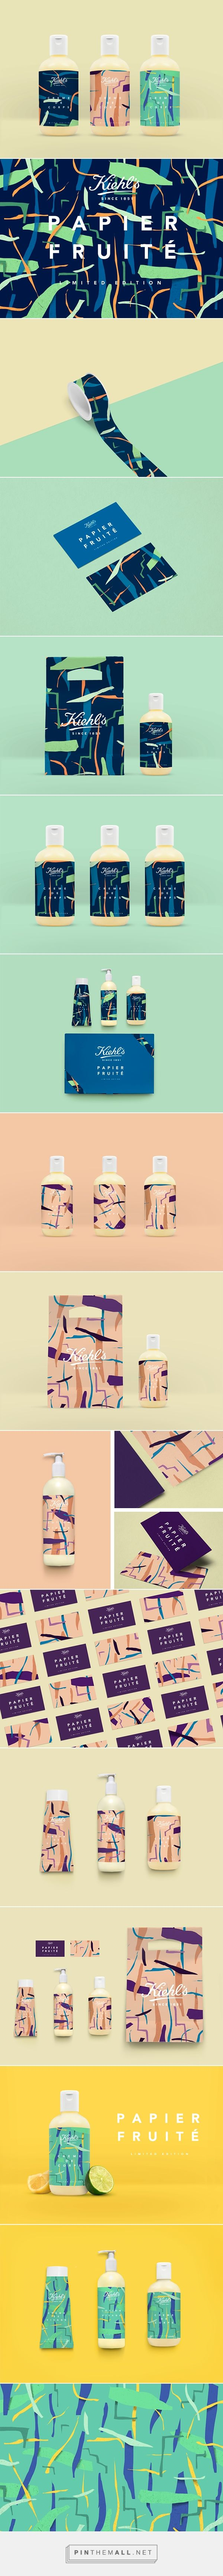 Don't Try Studio – Conceptual branding for Kiehl's Papier Fruité